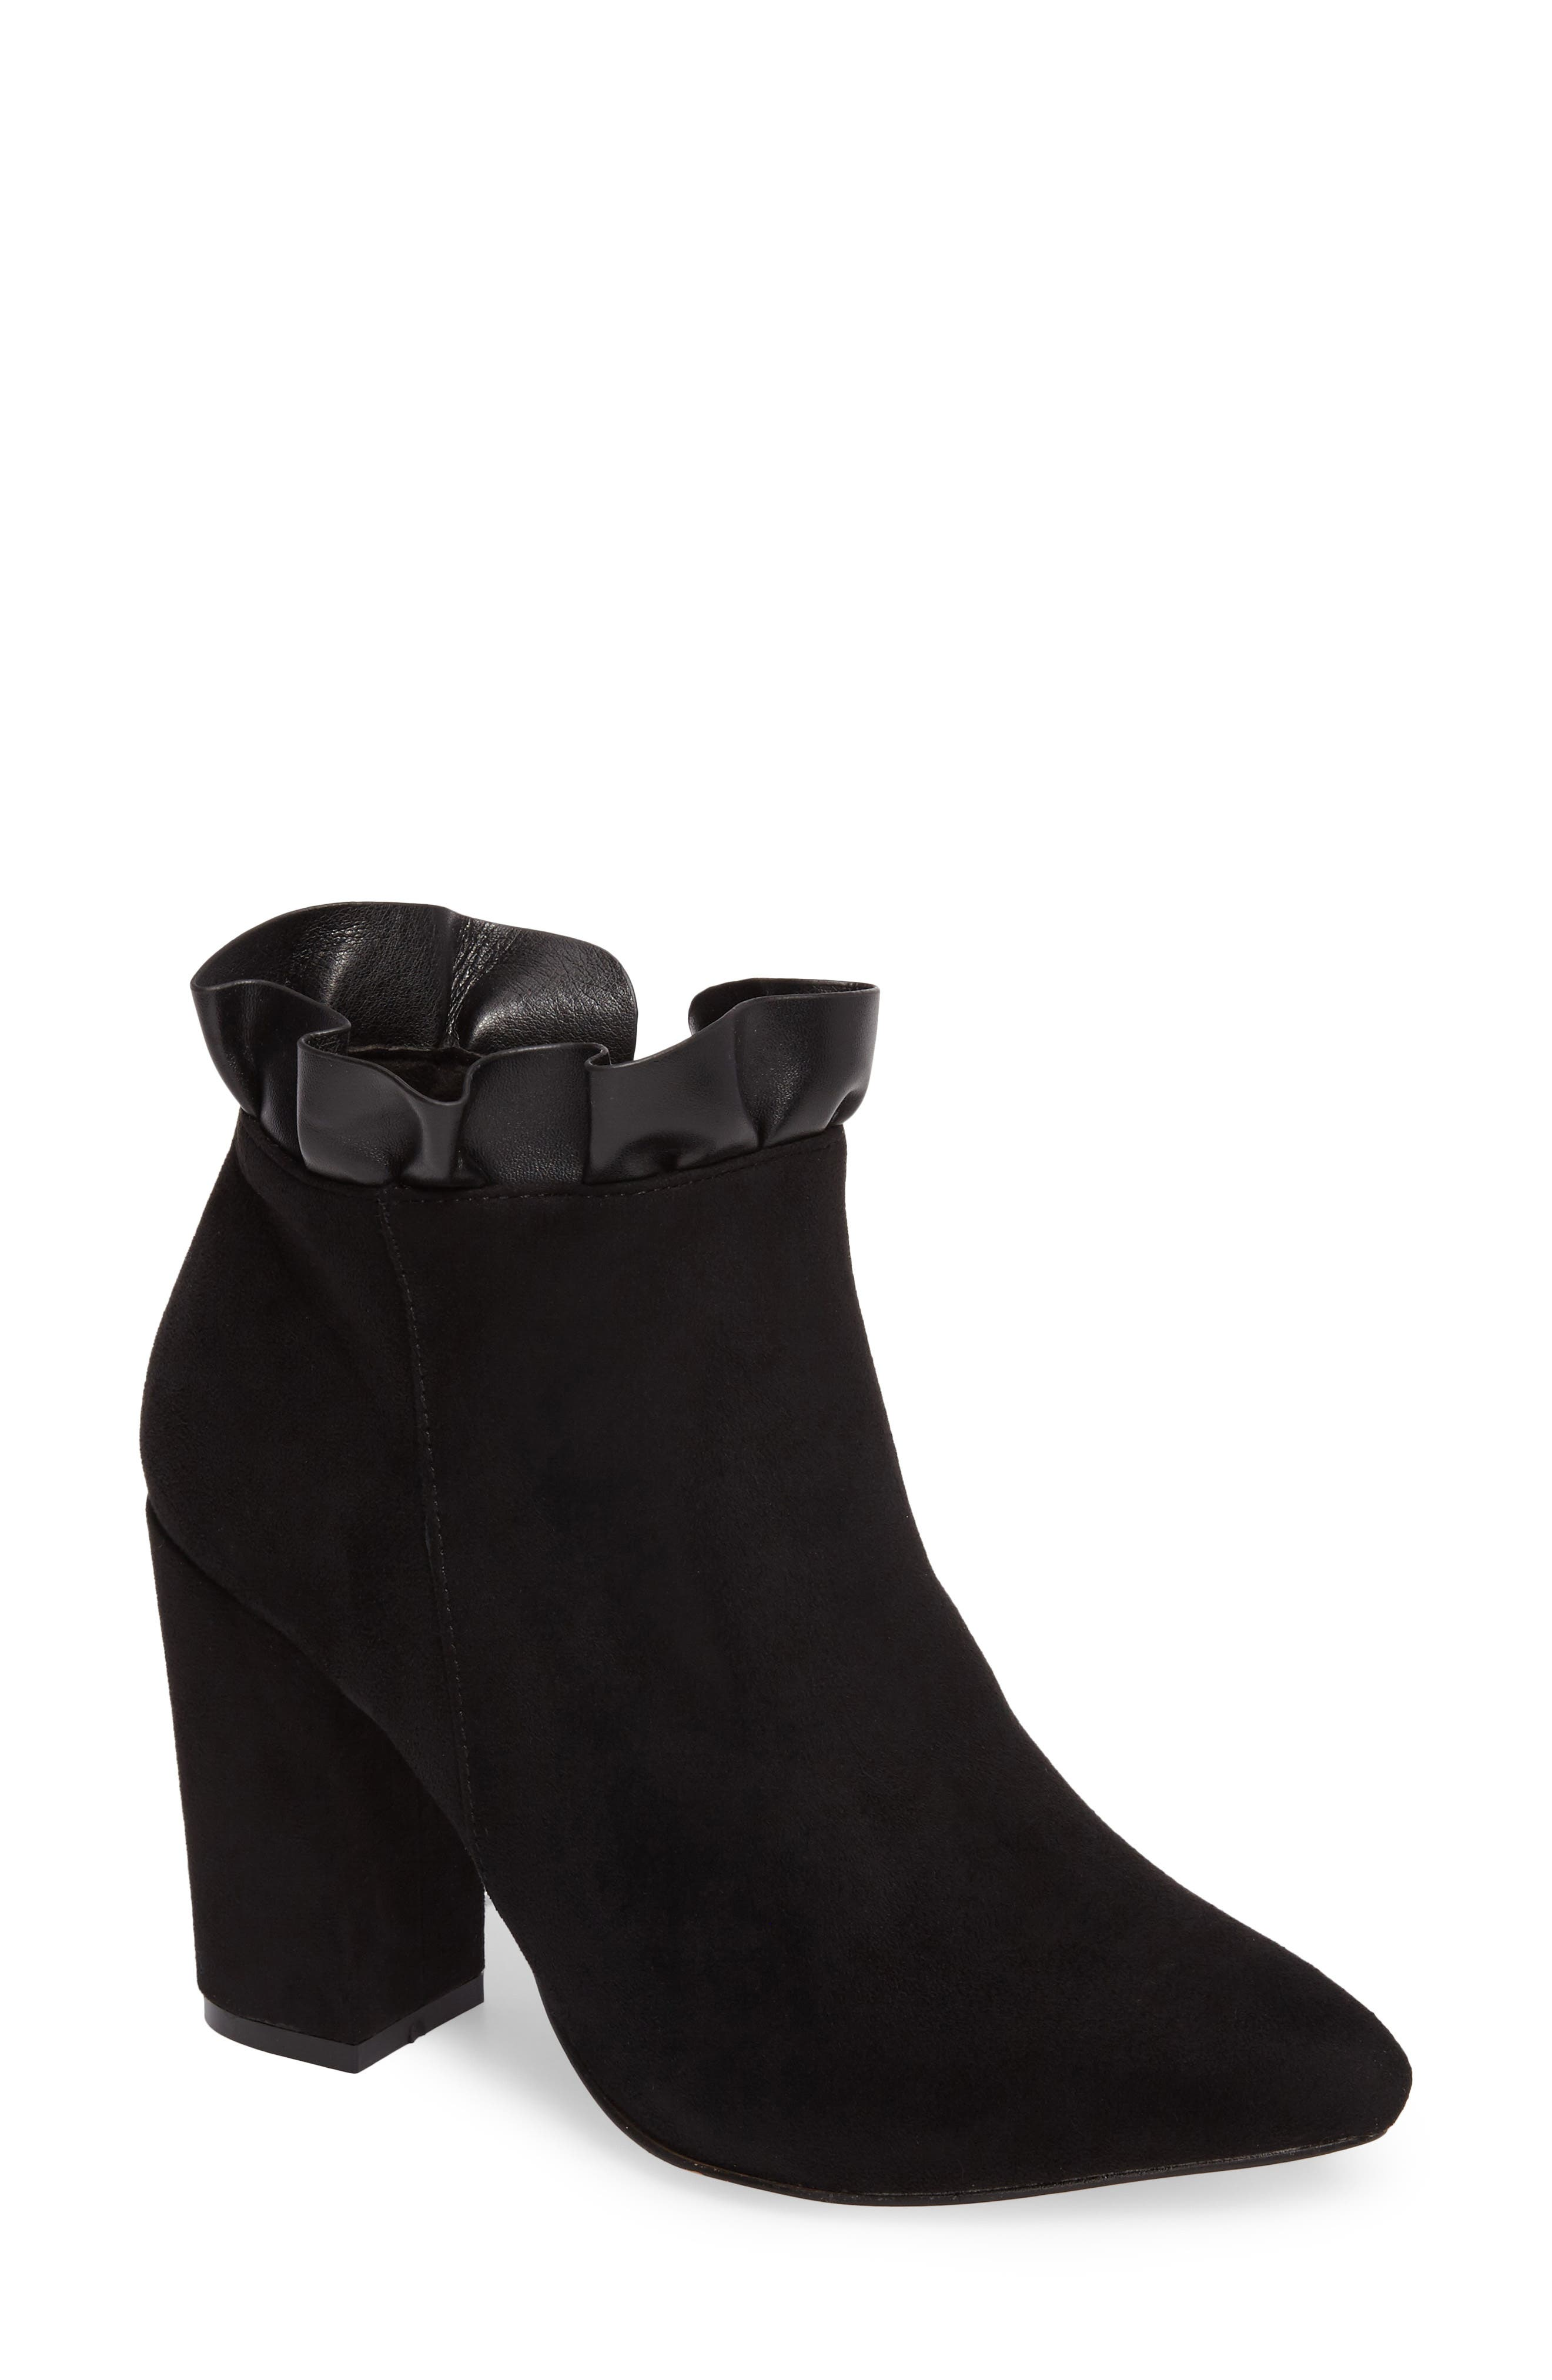 Katana Pointy Toe Bootie,                         Main,                         color,